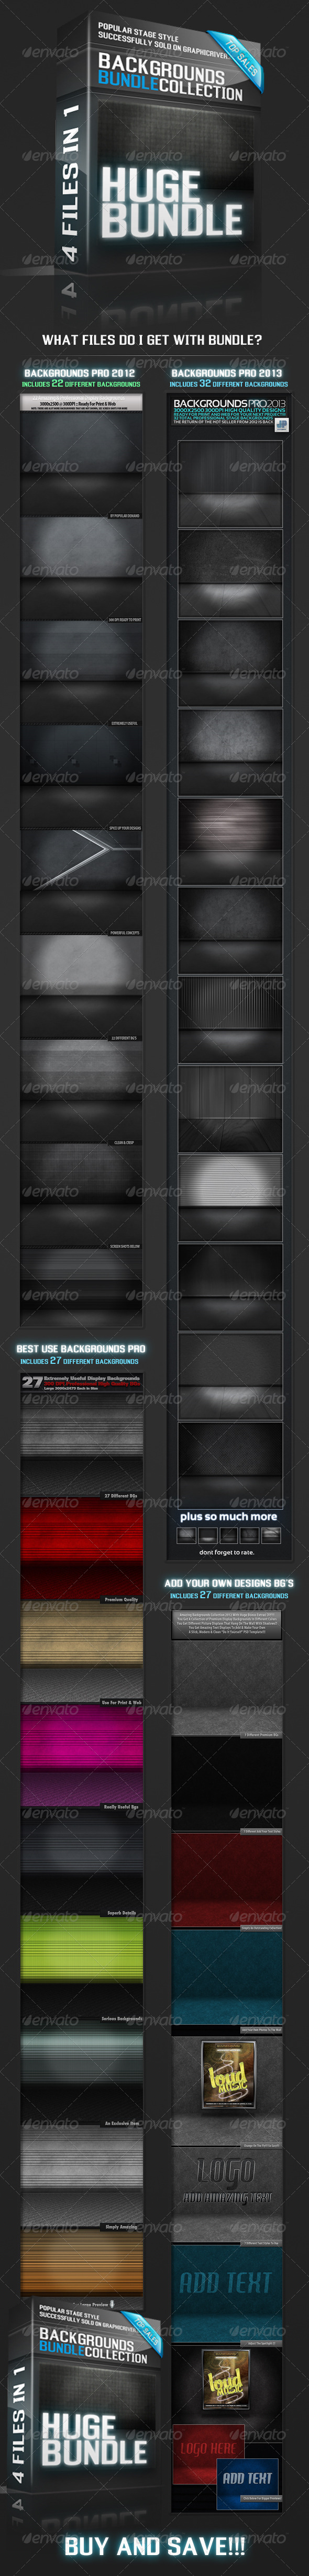 Mock Up Style Backgrounds Bundle - Backgrounds Graphics